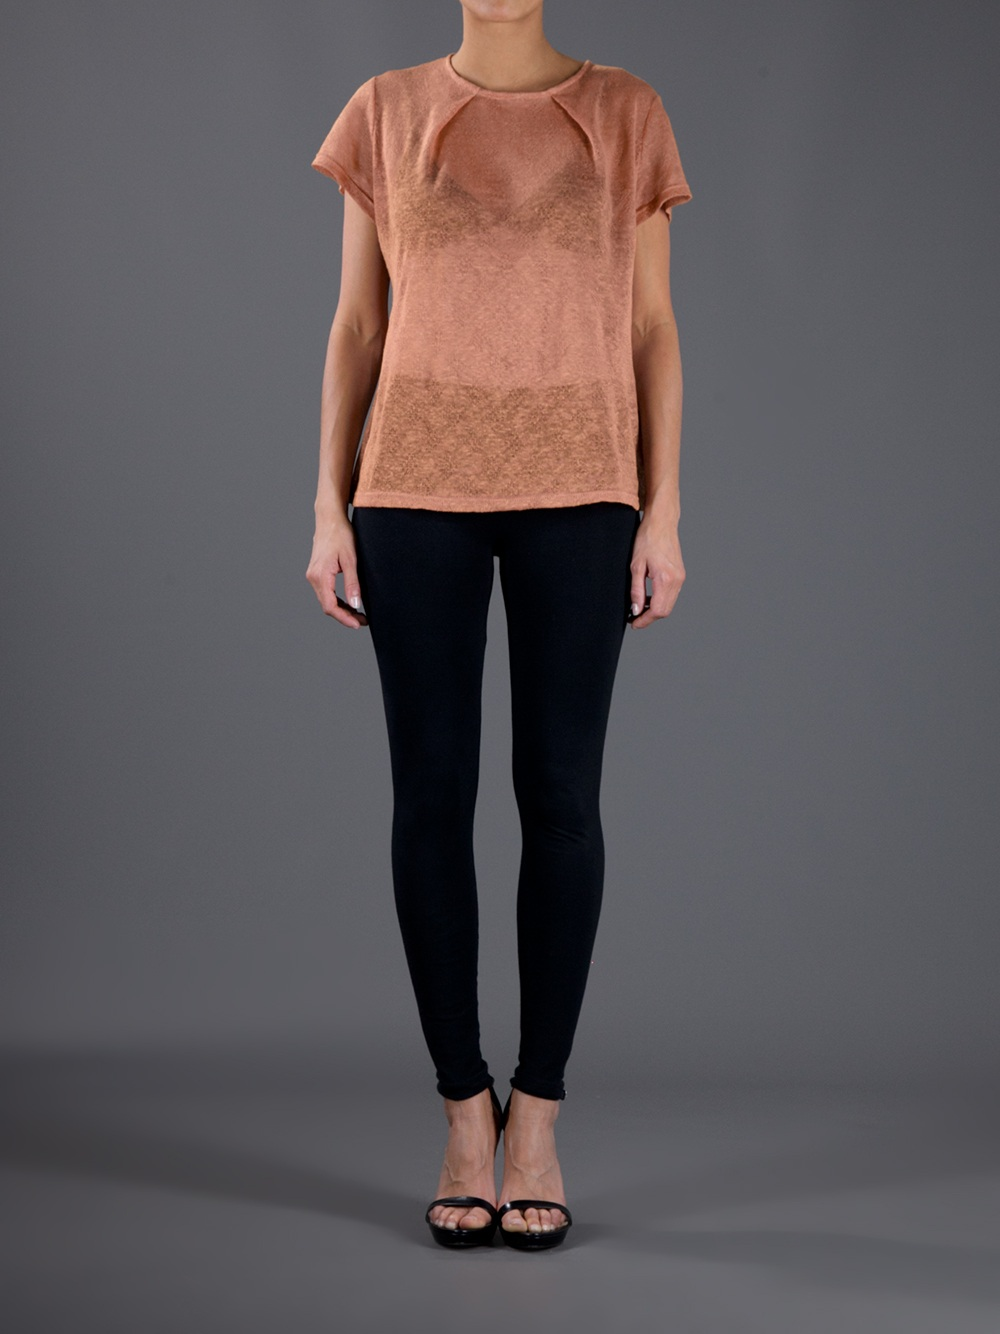 Isabell De Hillerin Fold Detail Blouse - Ursa Loves - farfetch.com_files.jpg